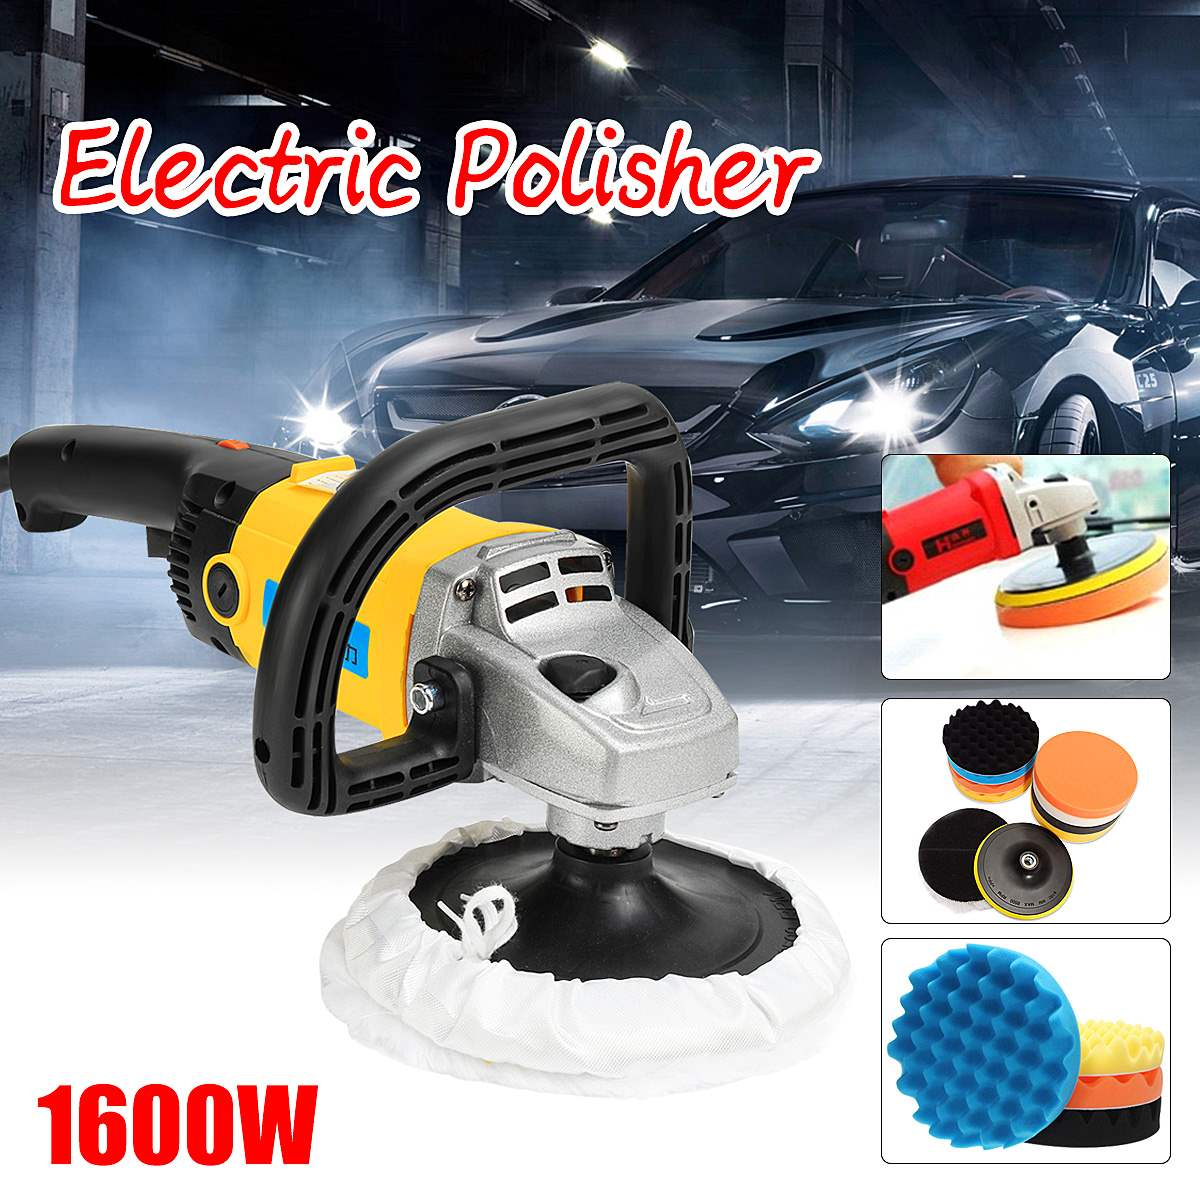 Electric Waxer 220V 1600W Polisher 1/8 Shaft Hand Held Polishing Machine Grinder Car Buffer Cleaner+7inch Polishing Sponge ...